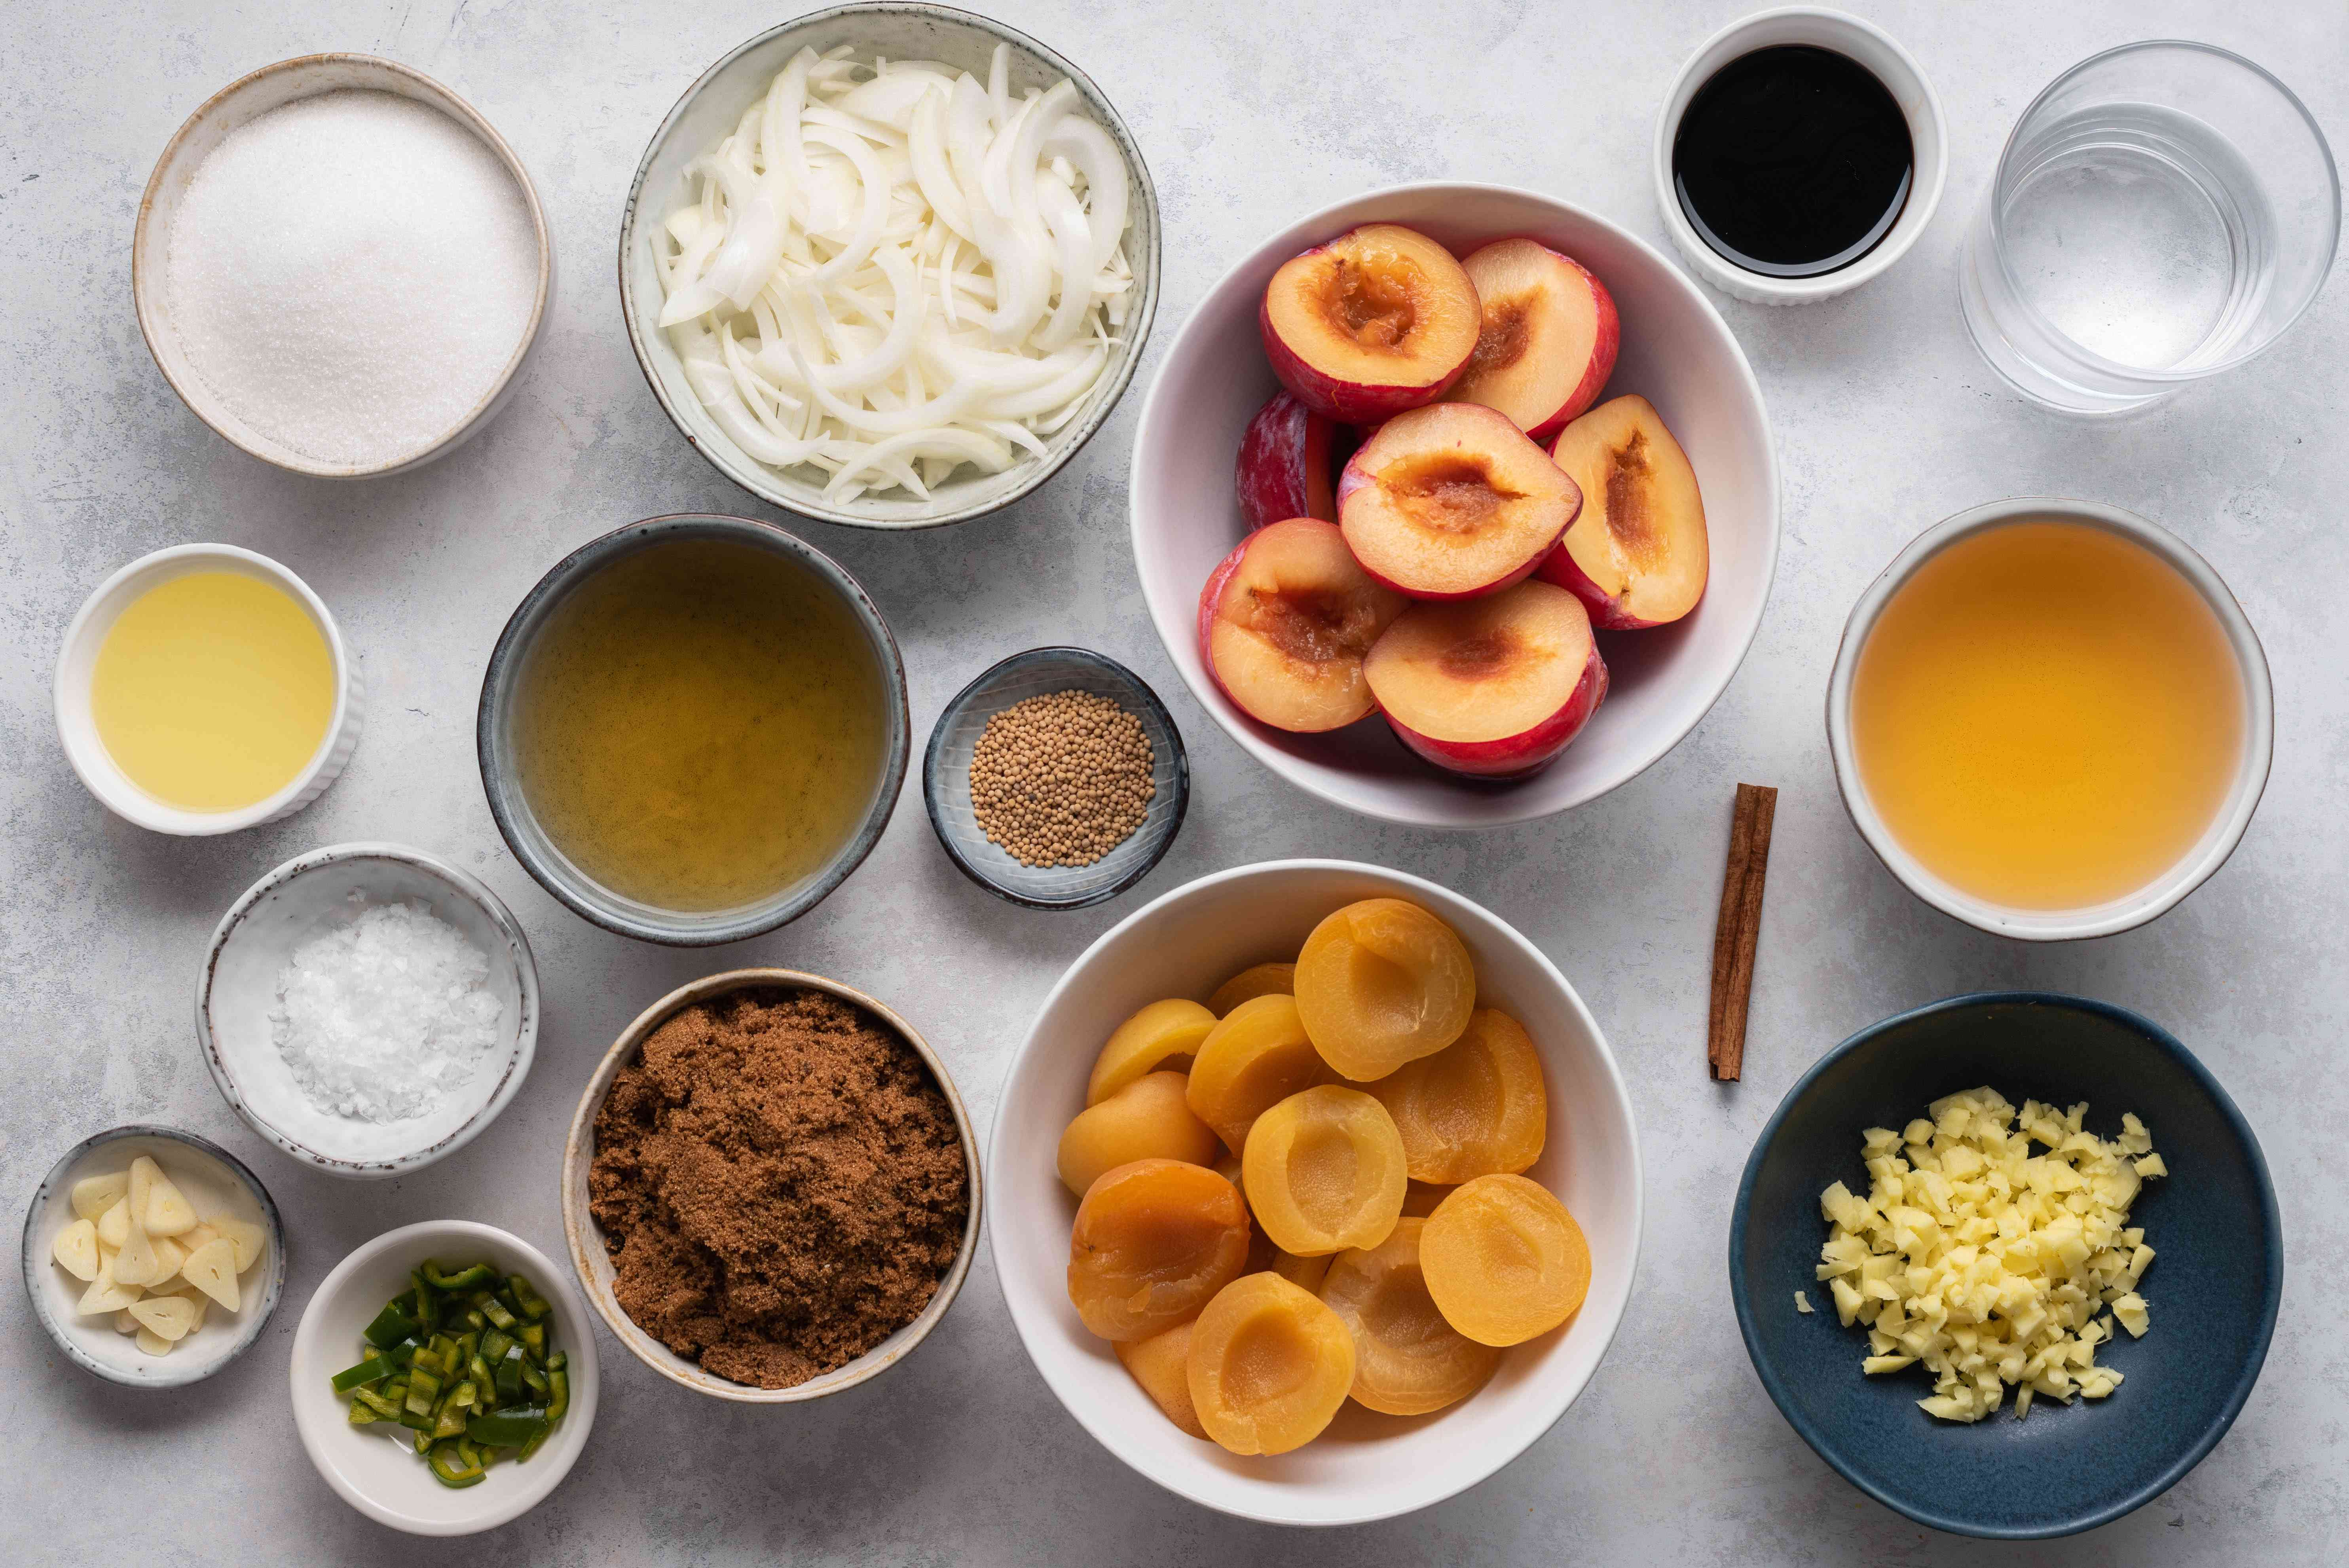 Classic Chinese Duck Sauce ingredients